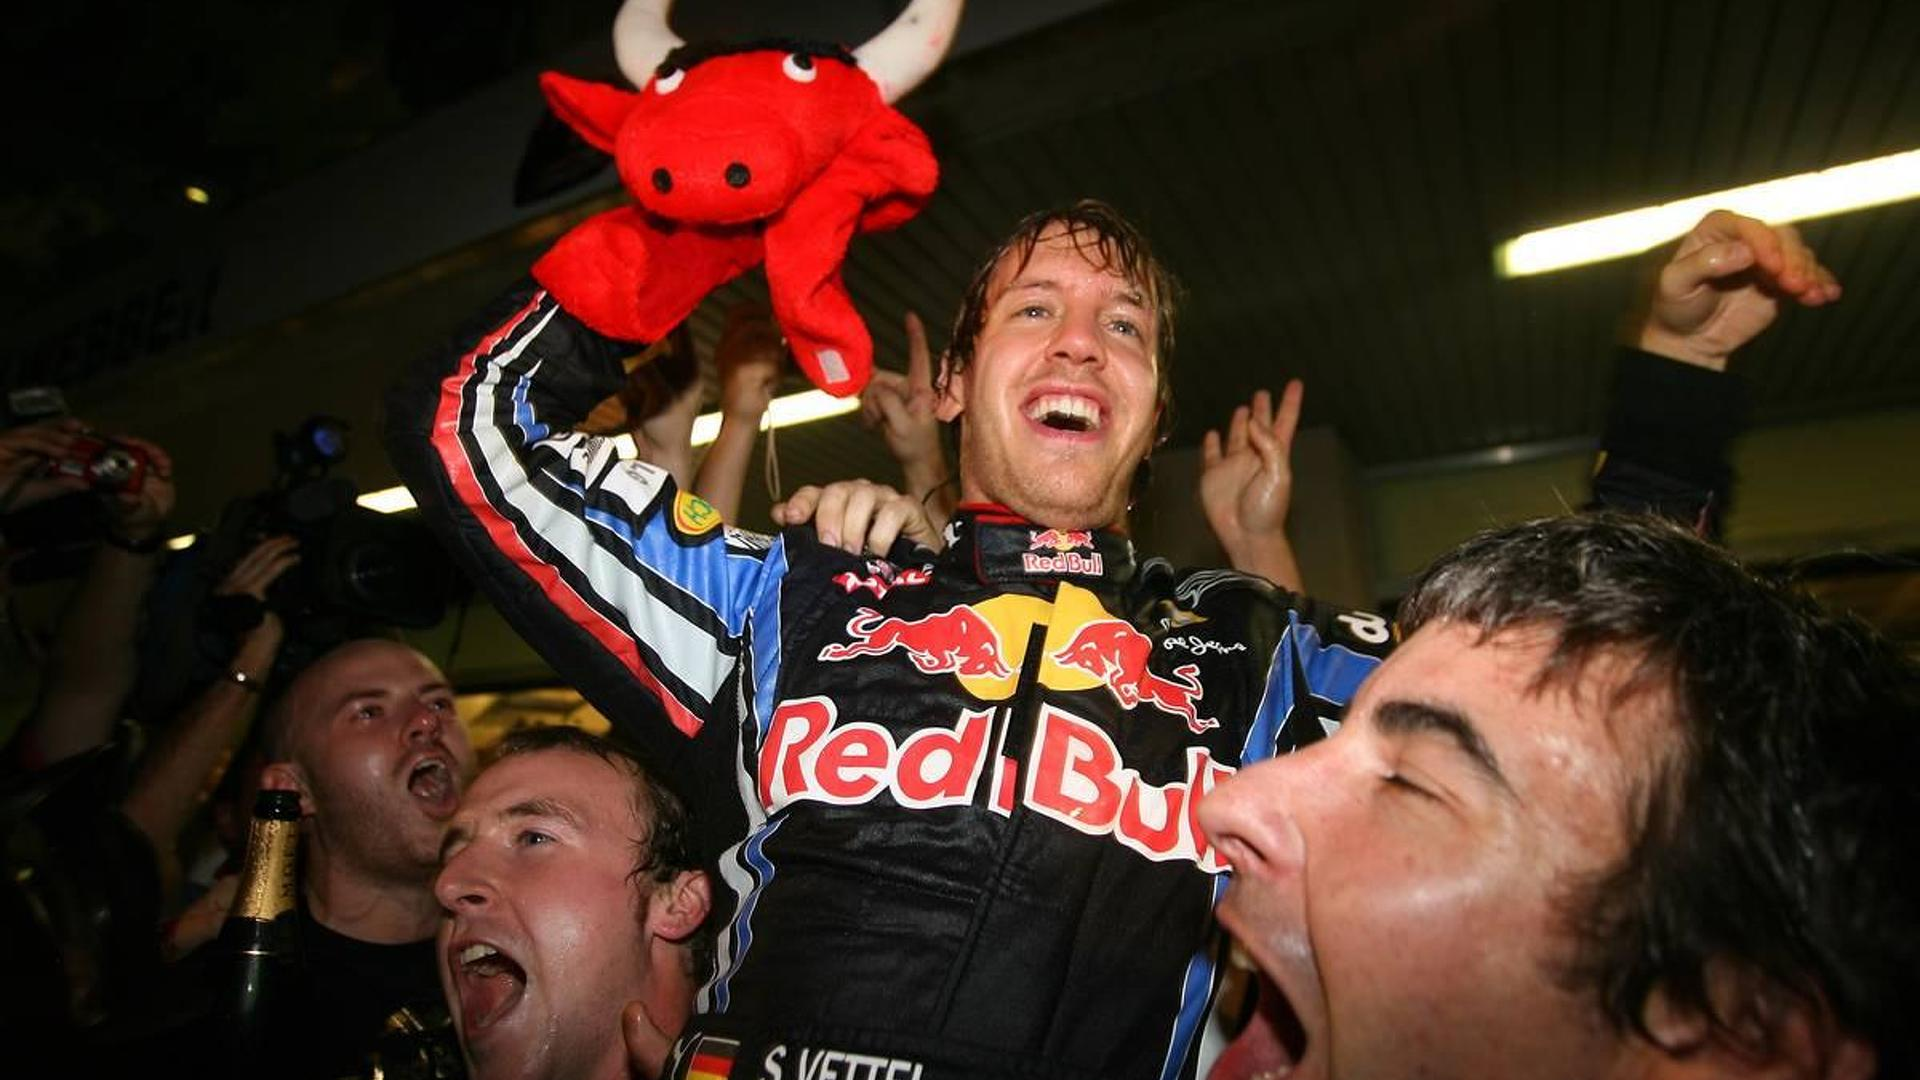 Only Red Bull free to spurn driver inequality - Villadelprat